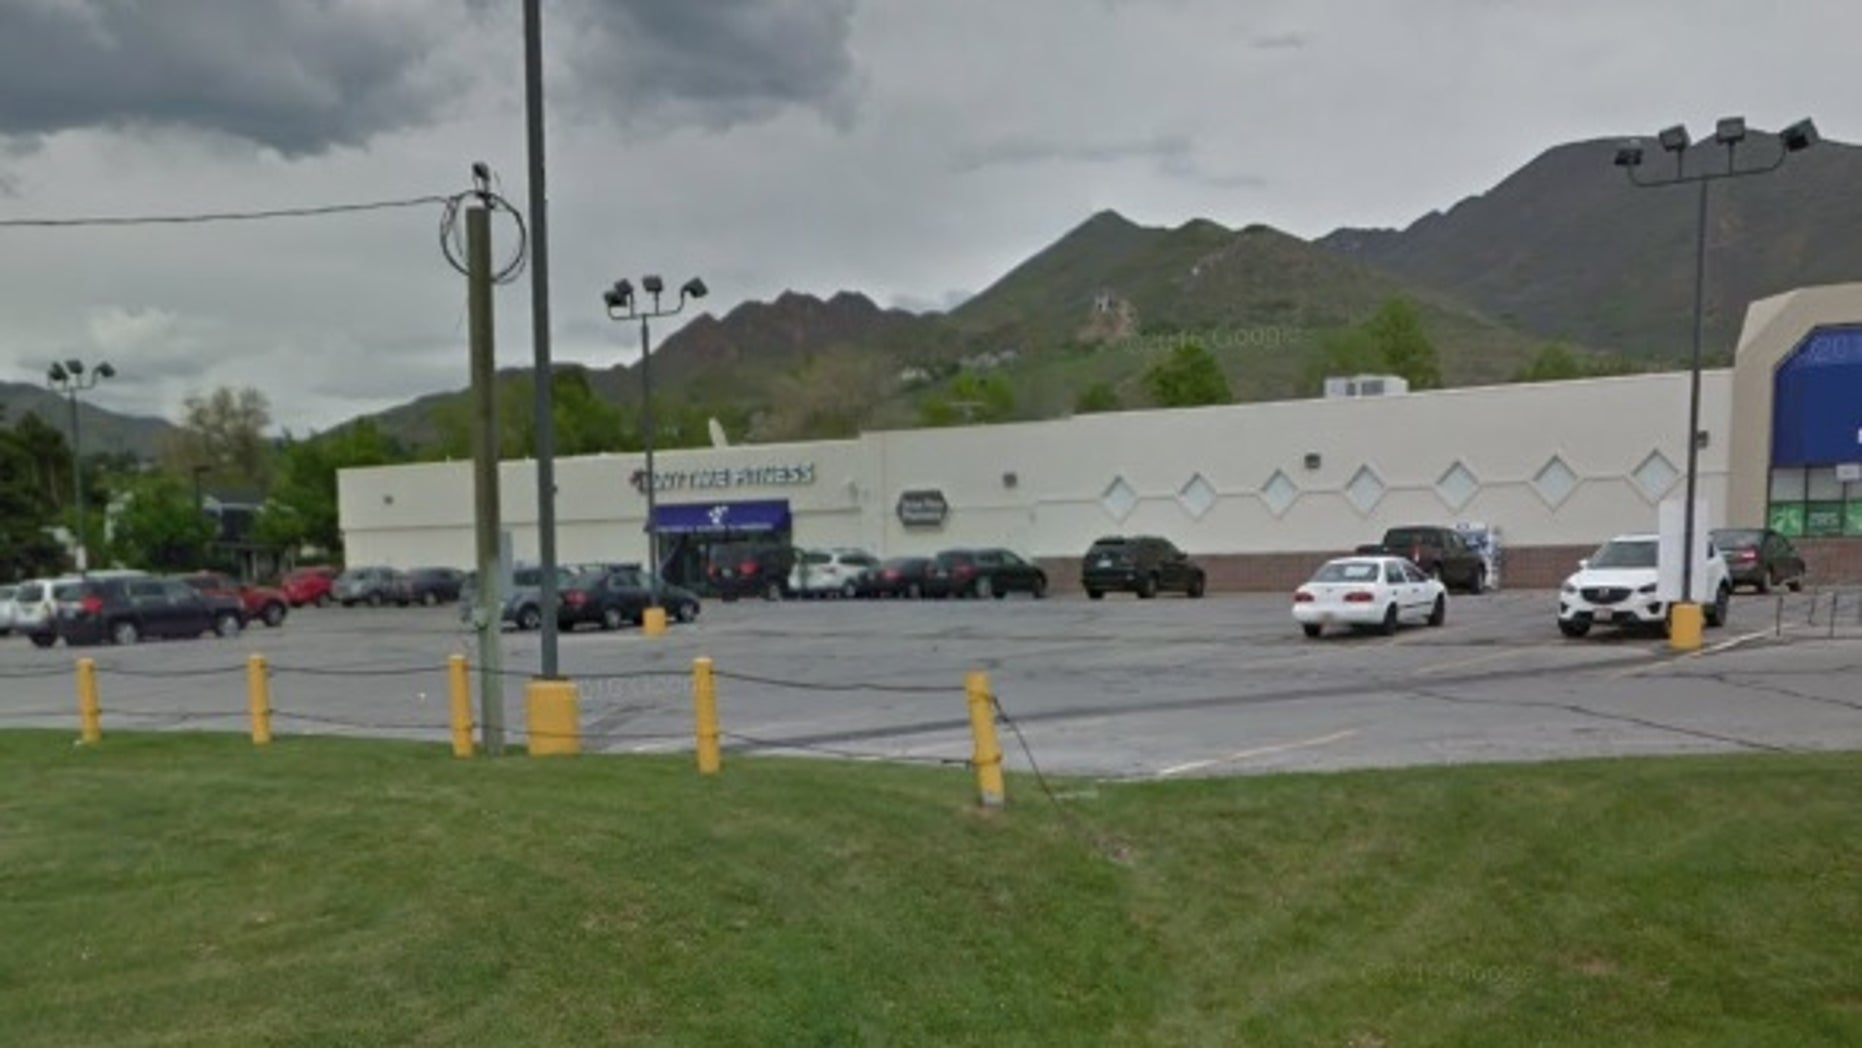 It happened in a parking lot in Salt Lake City, police say.